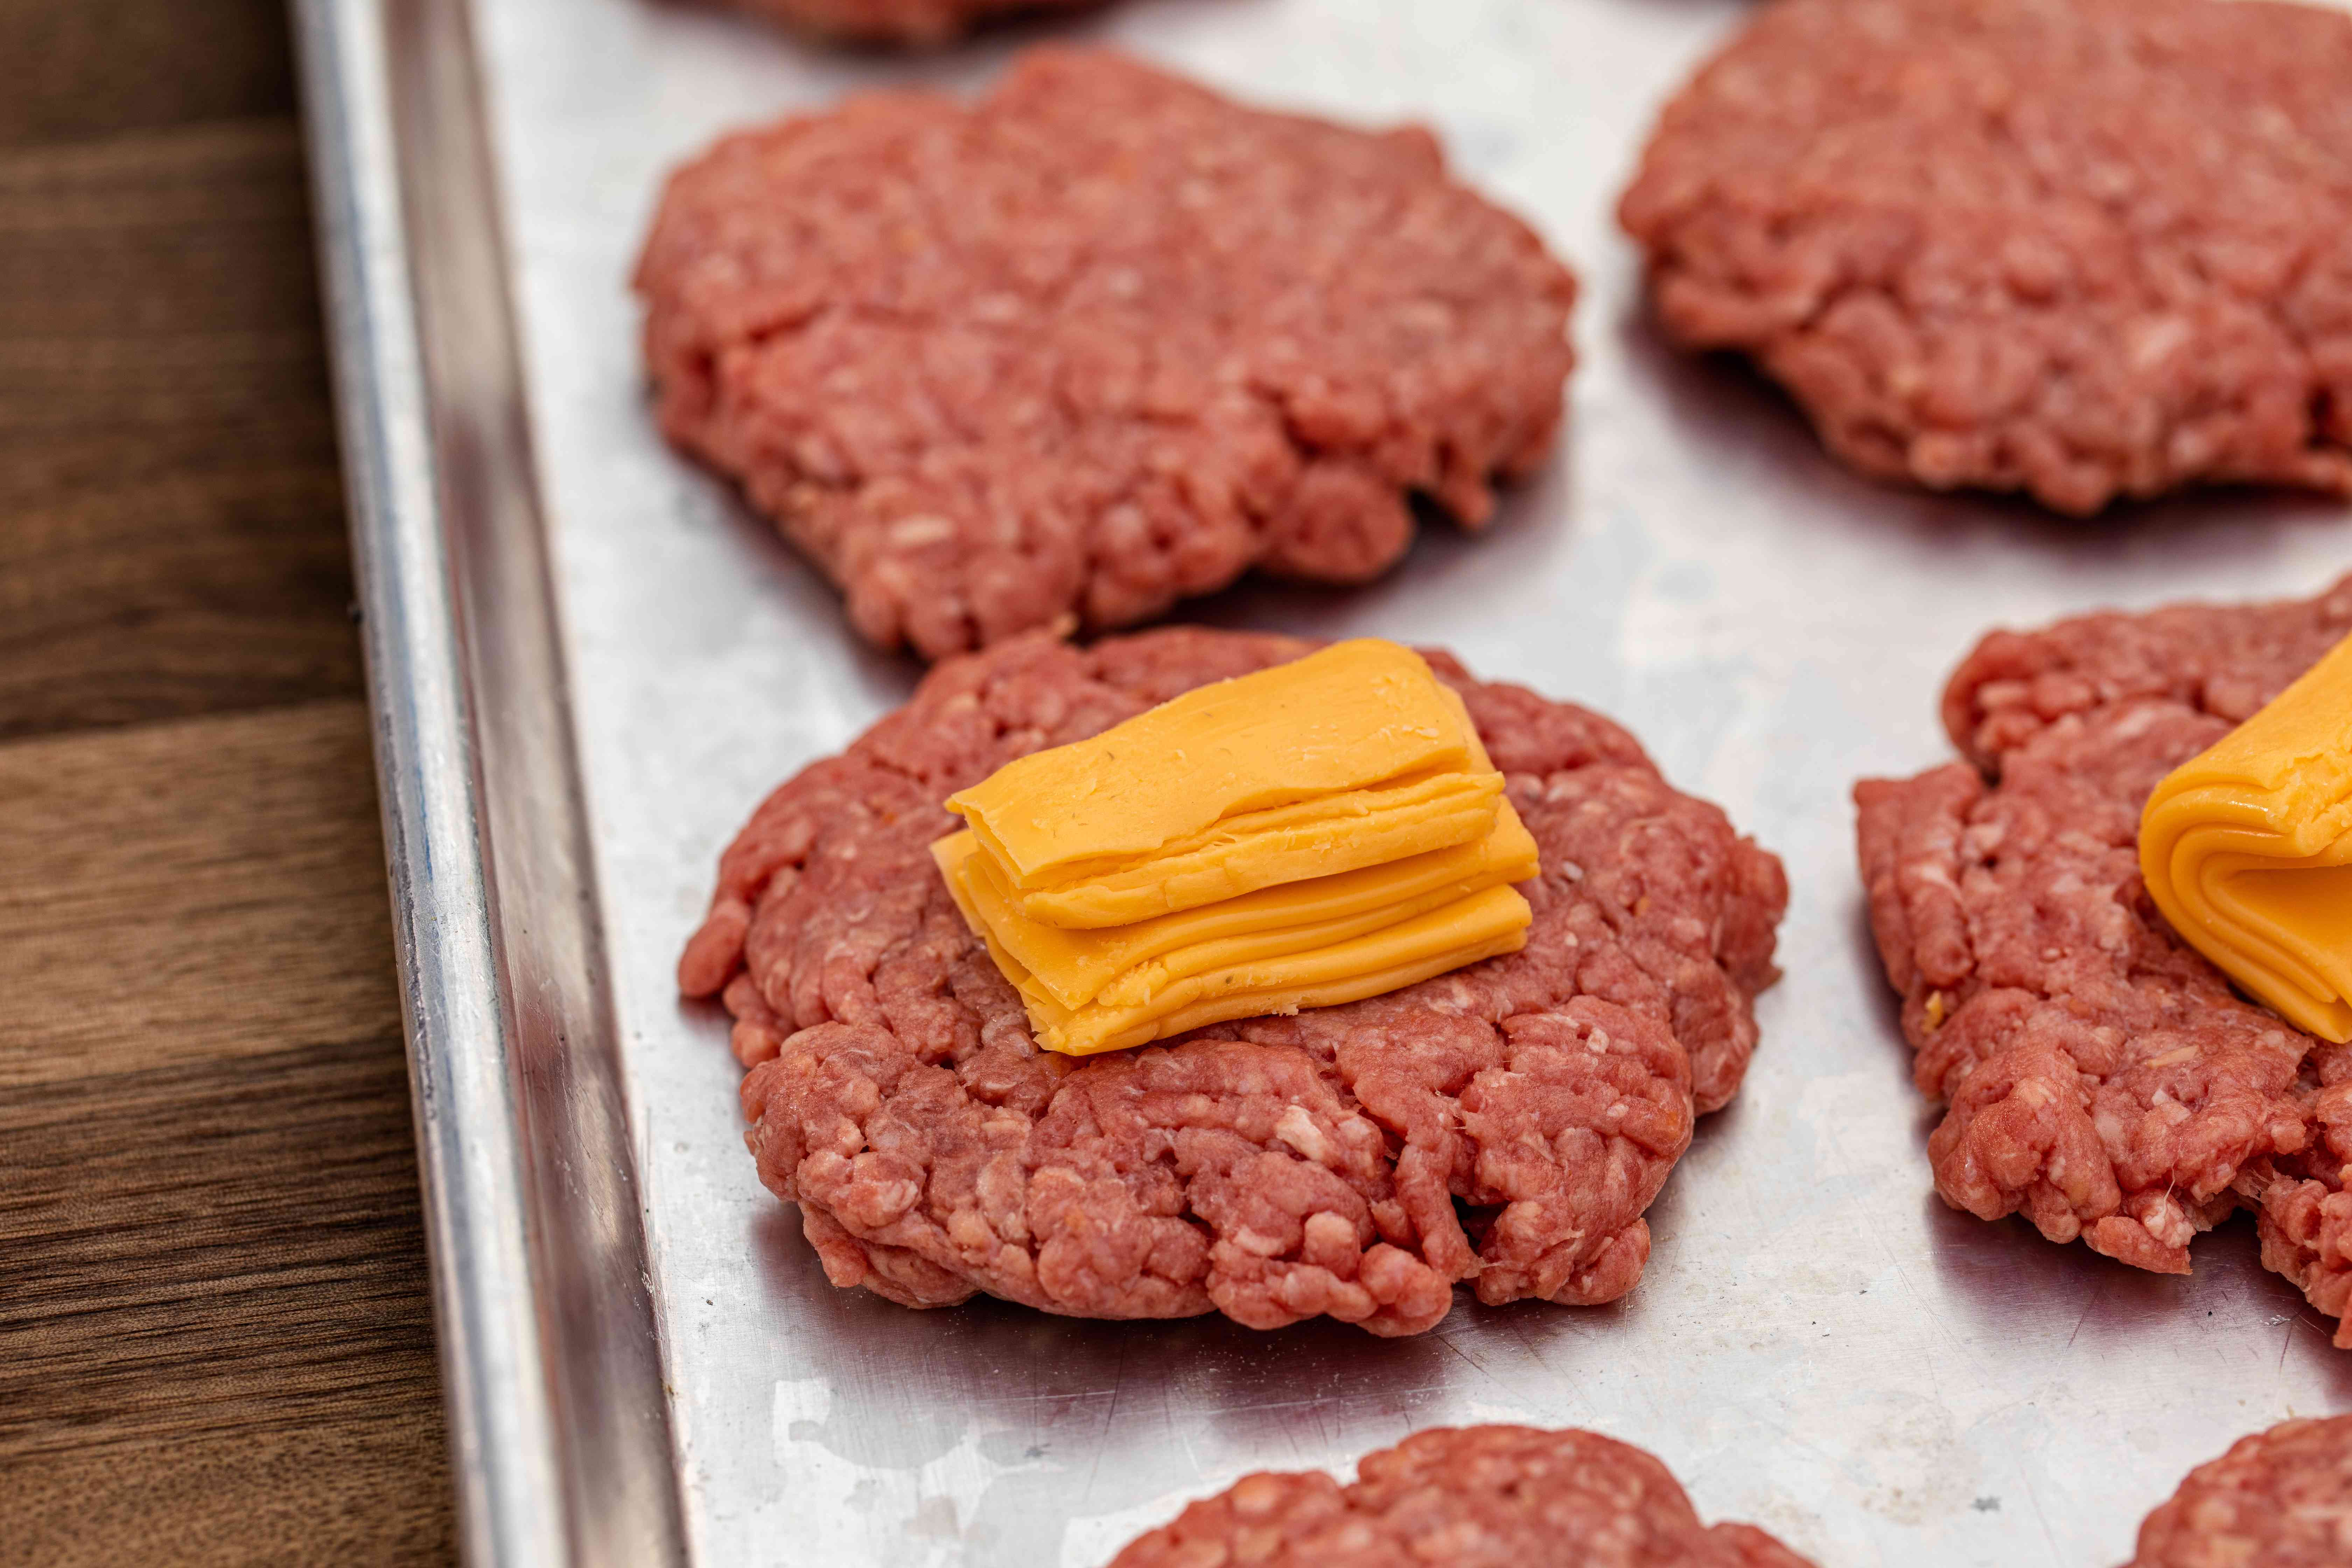 Folded sliced cheese on top of burger patties to show how to make a Jucy Lucy burger